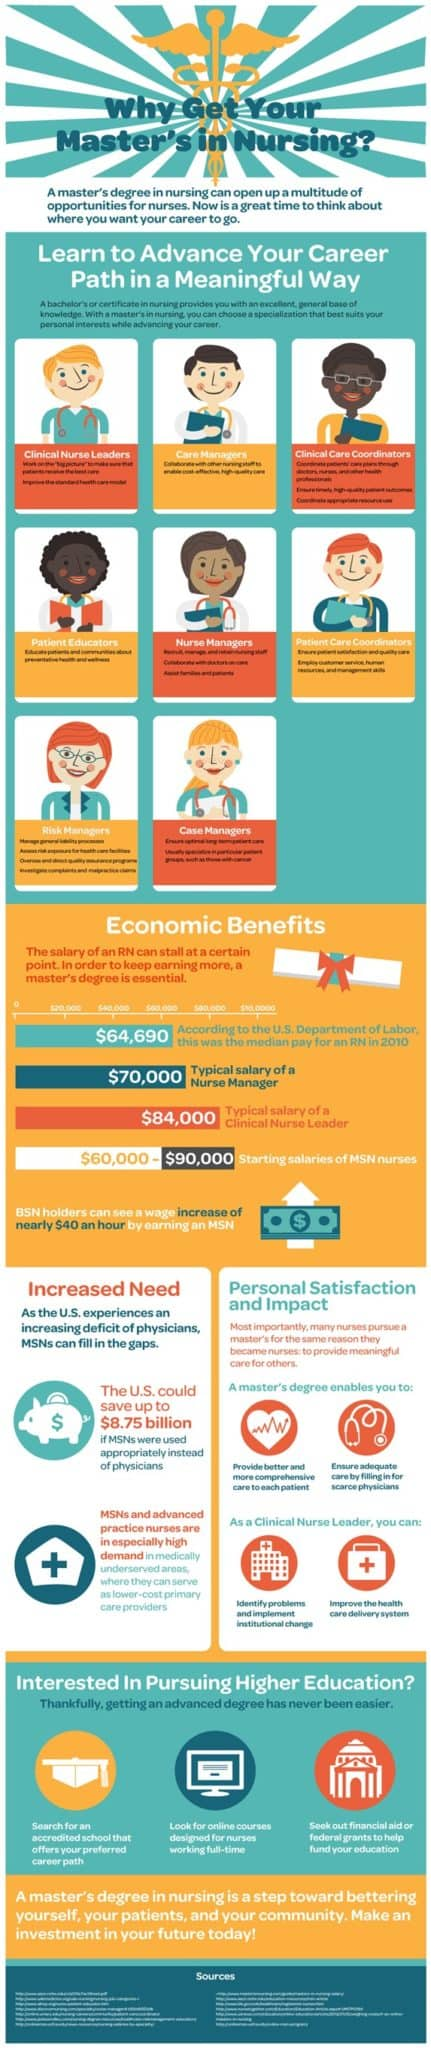 masters_in_nursing_infographic